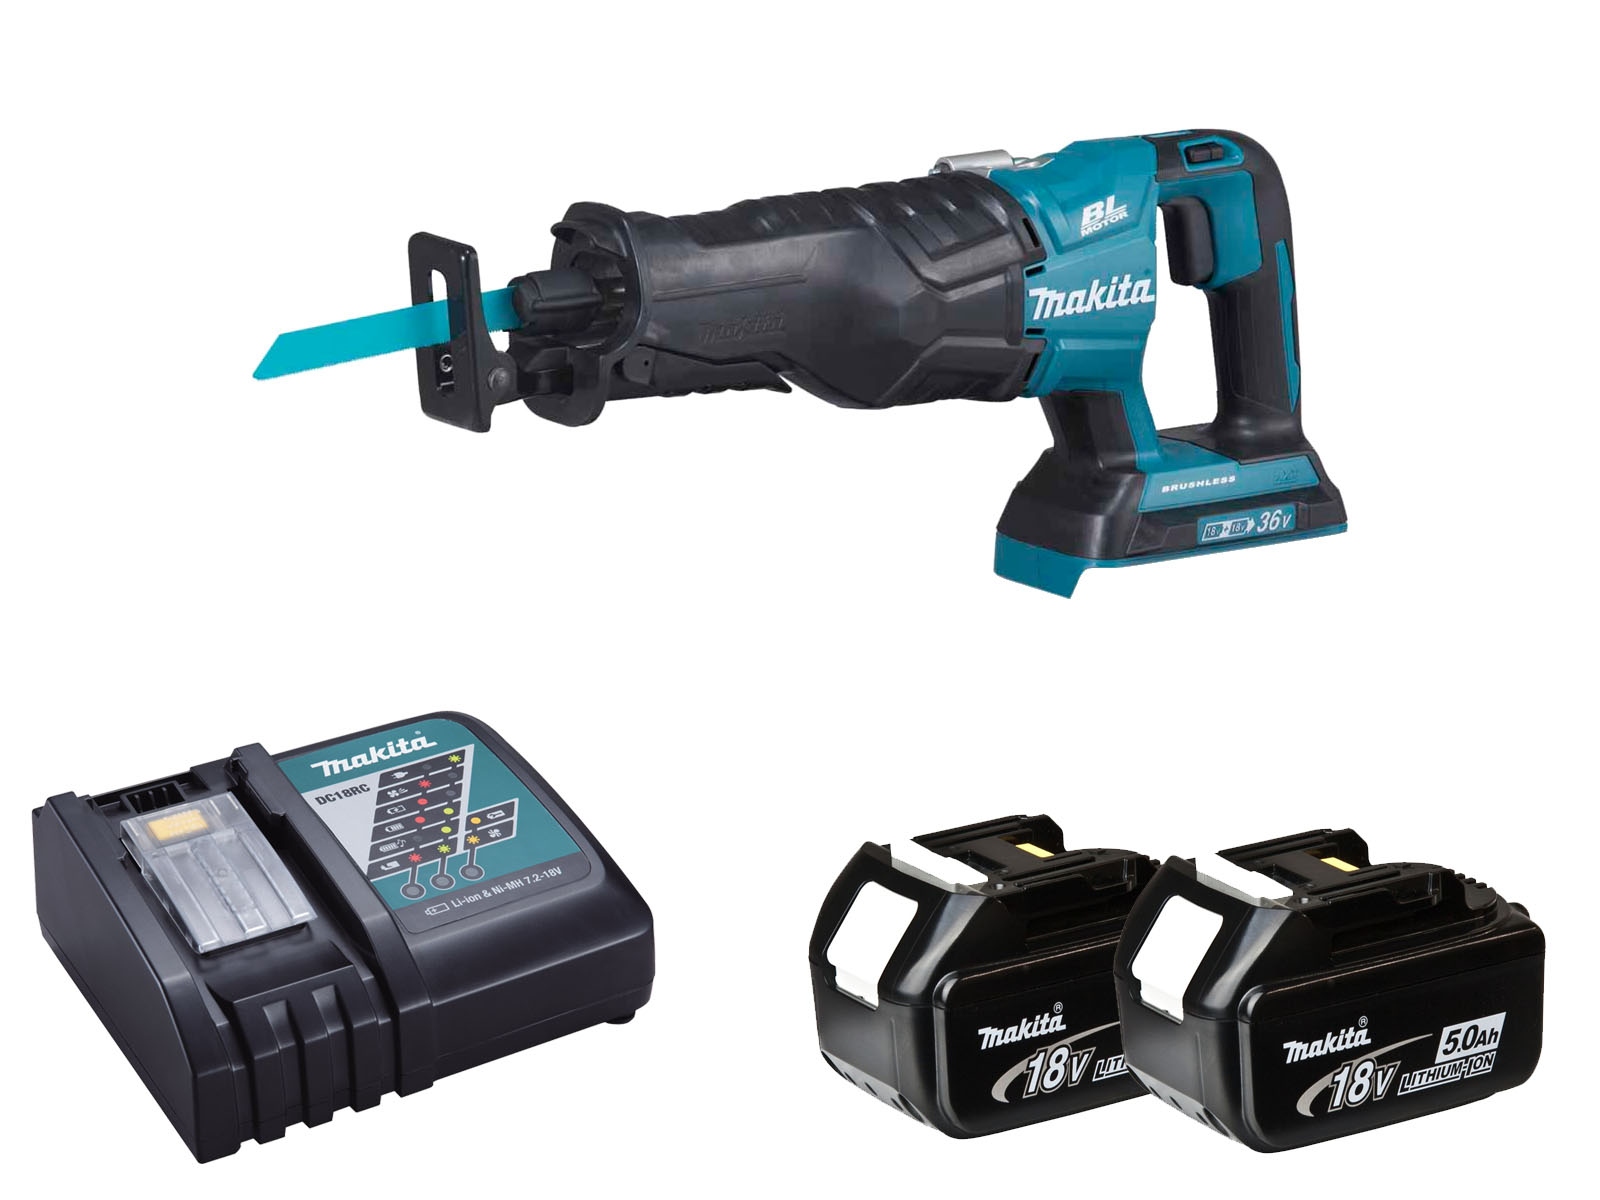 Makita DJR360Z Twin 18V (36V) Brushless Reciprocating Saw LXT - 5.0ah Pack